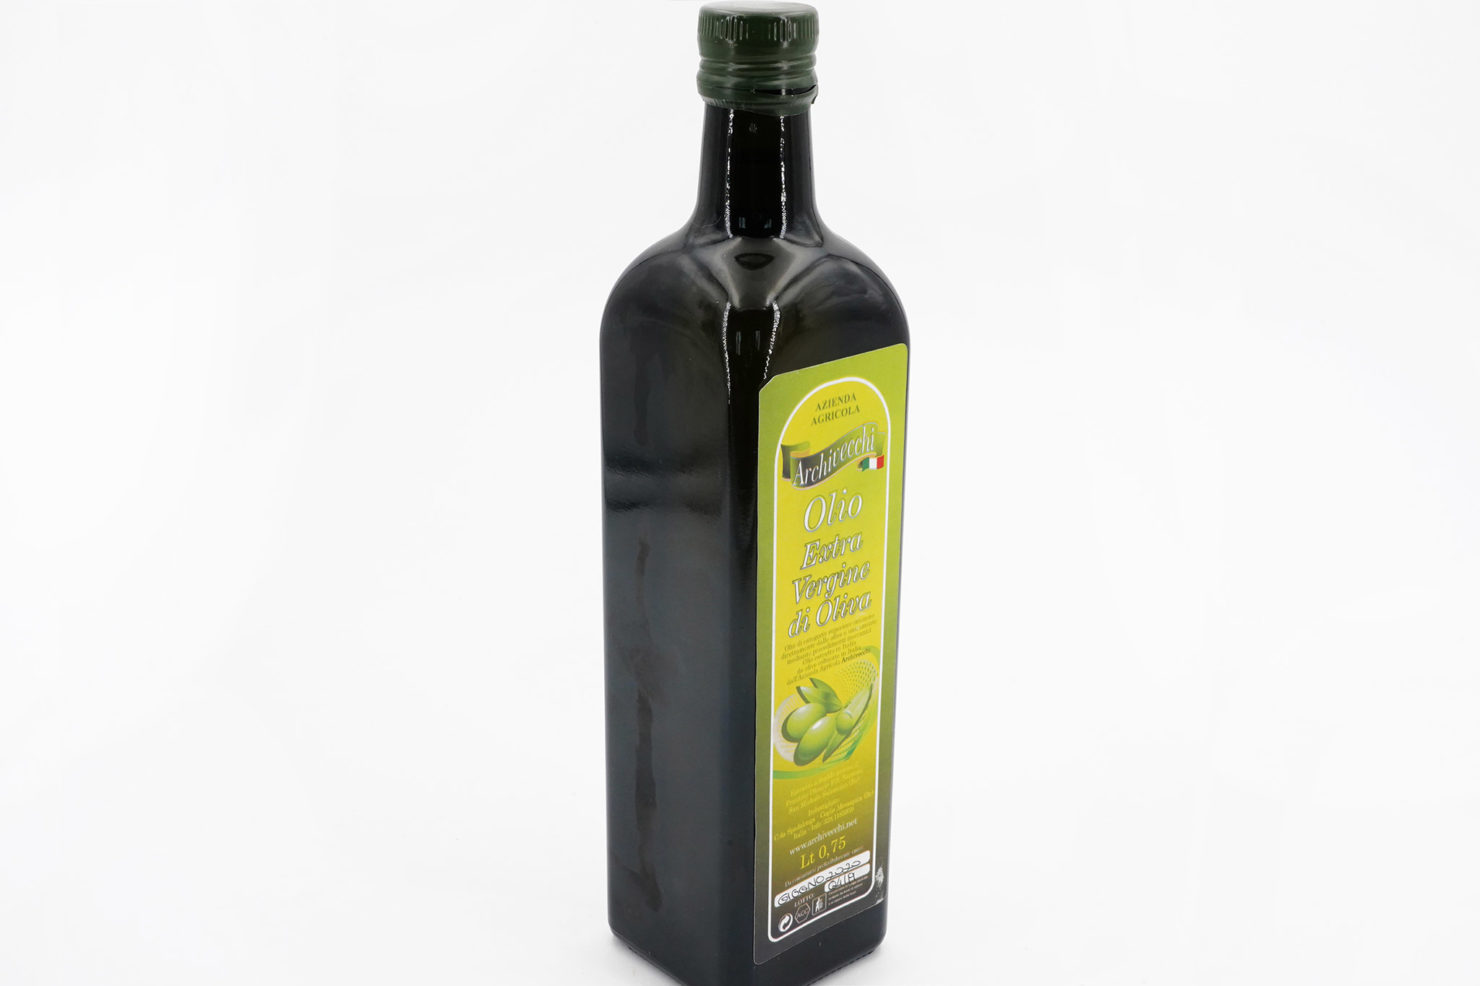 EXTRA VIRGIN OLIVE OIL ECOLOGICALLY PRODUCED IN OSTUNI